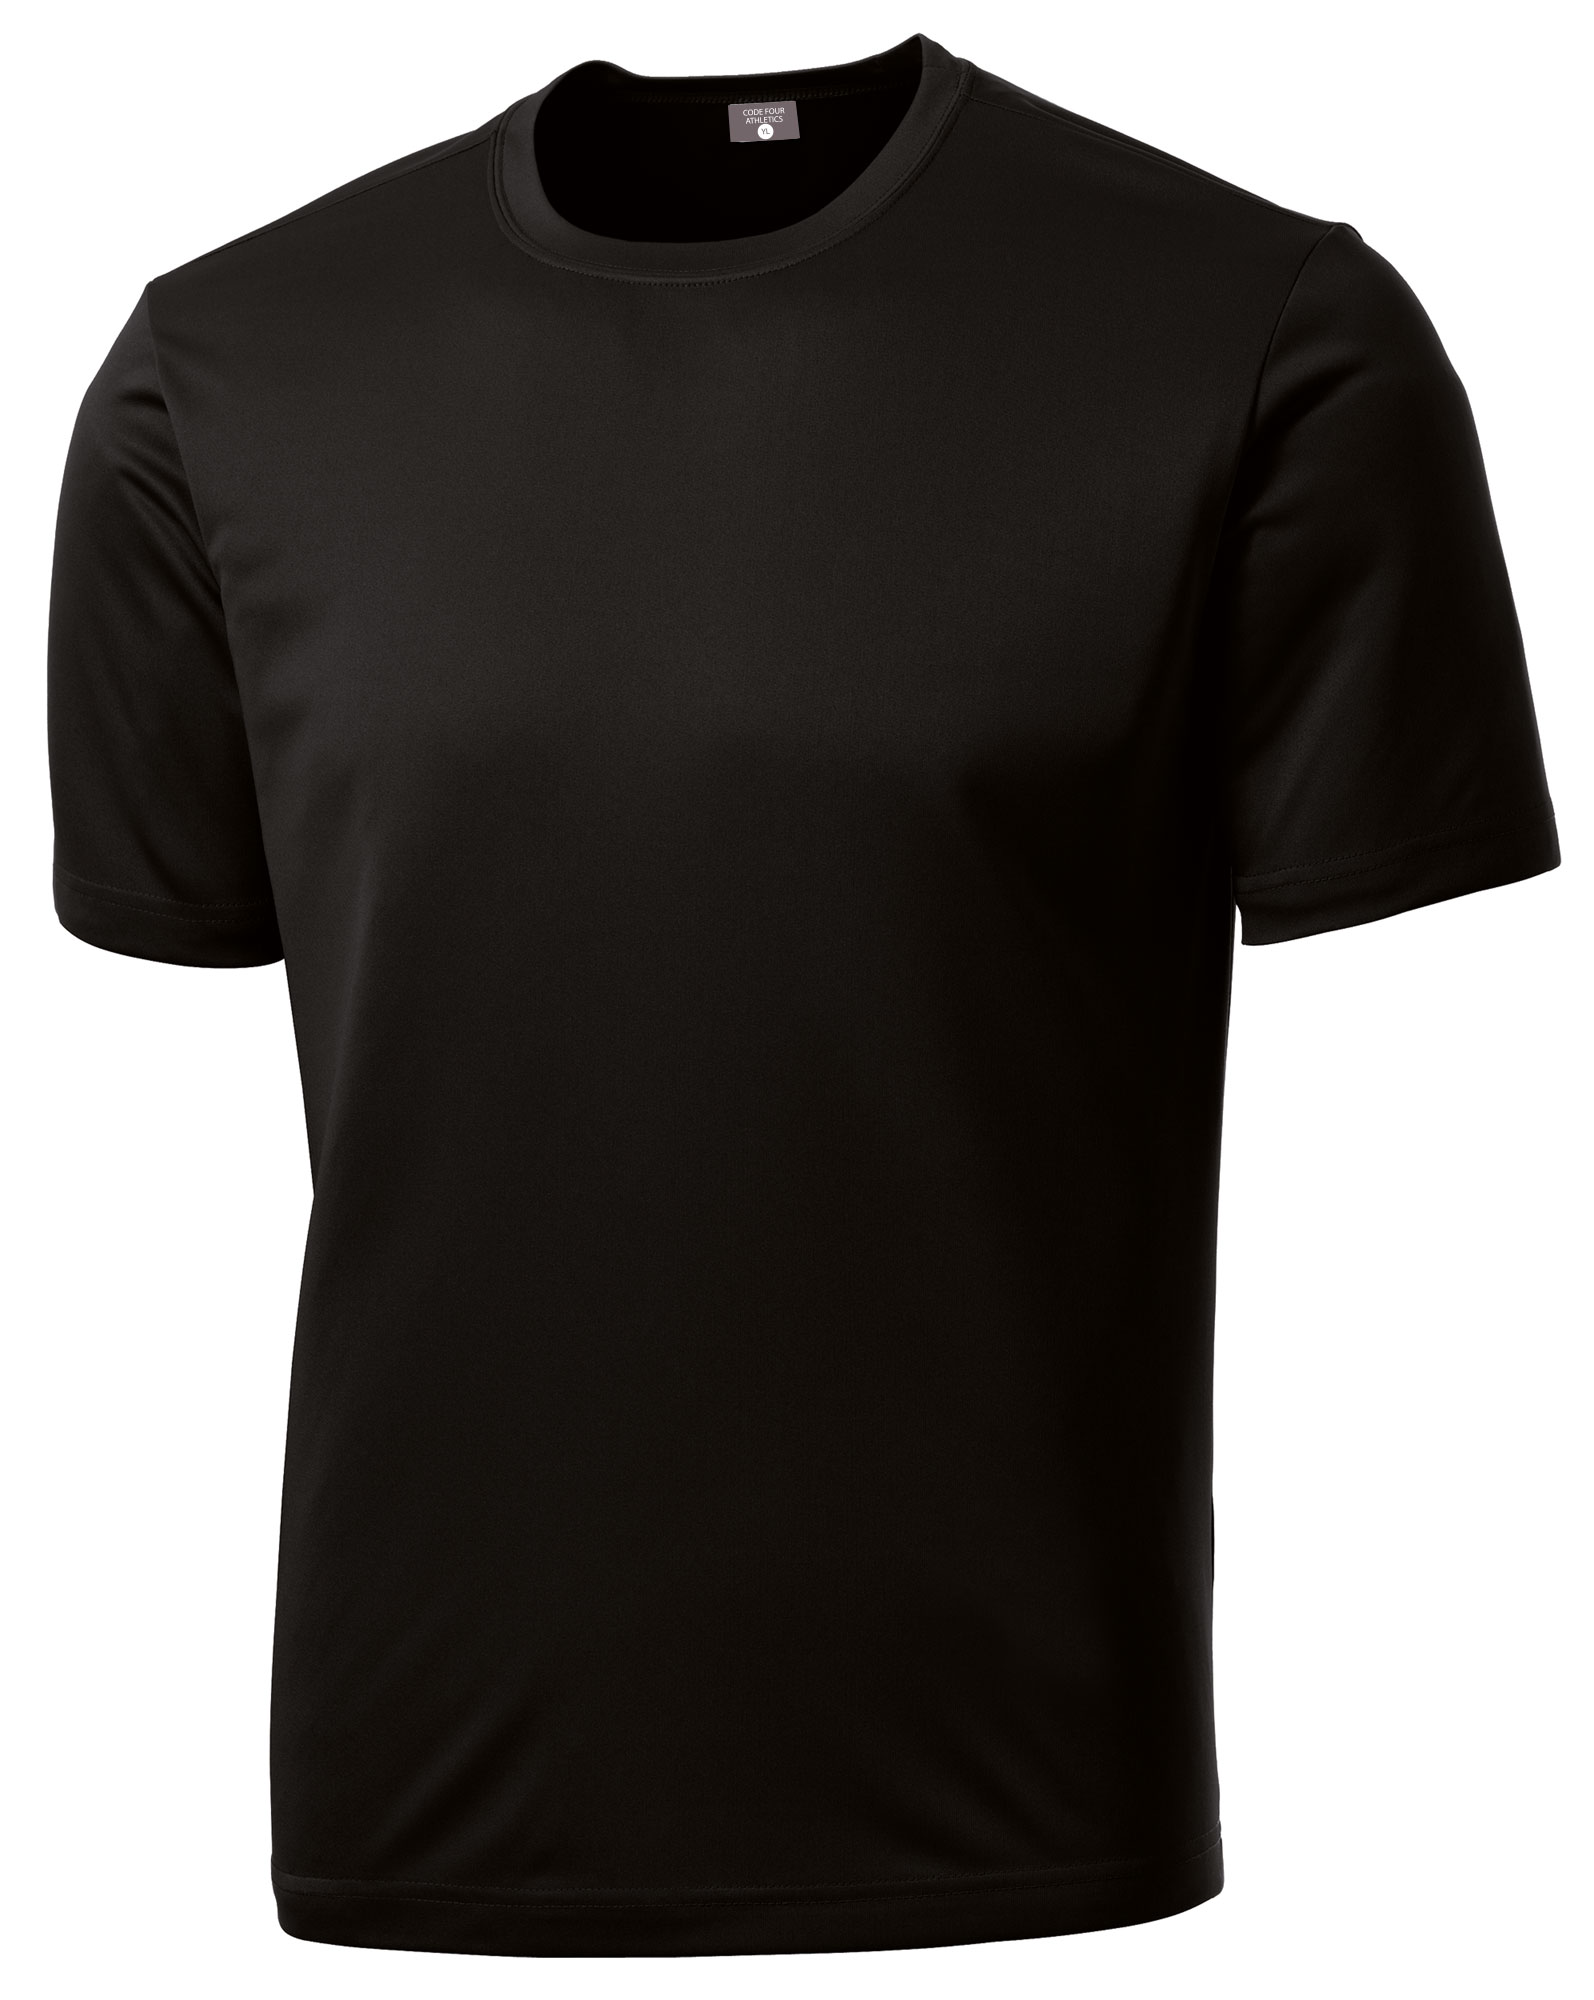 Soccer men's undershirt in black by Code Four Athletics